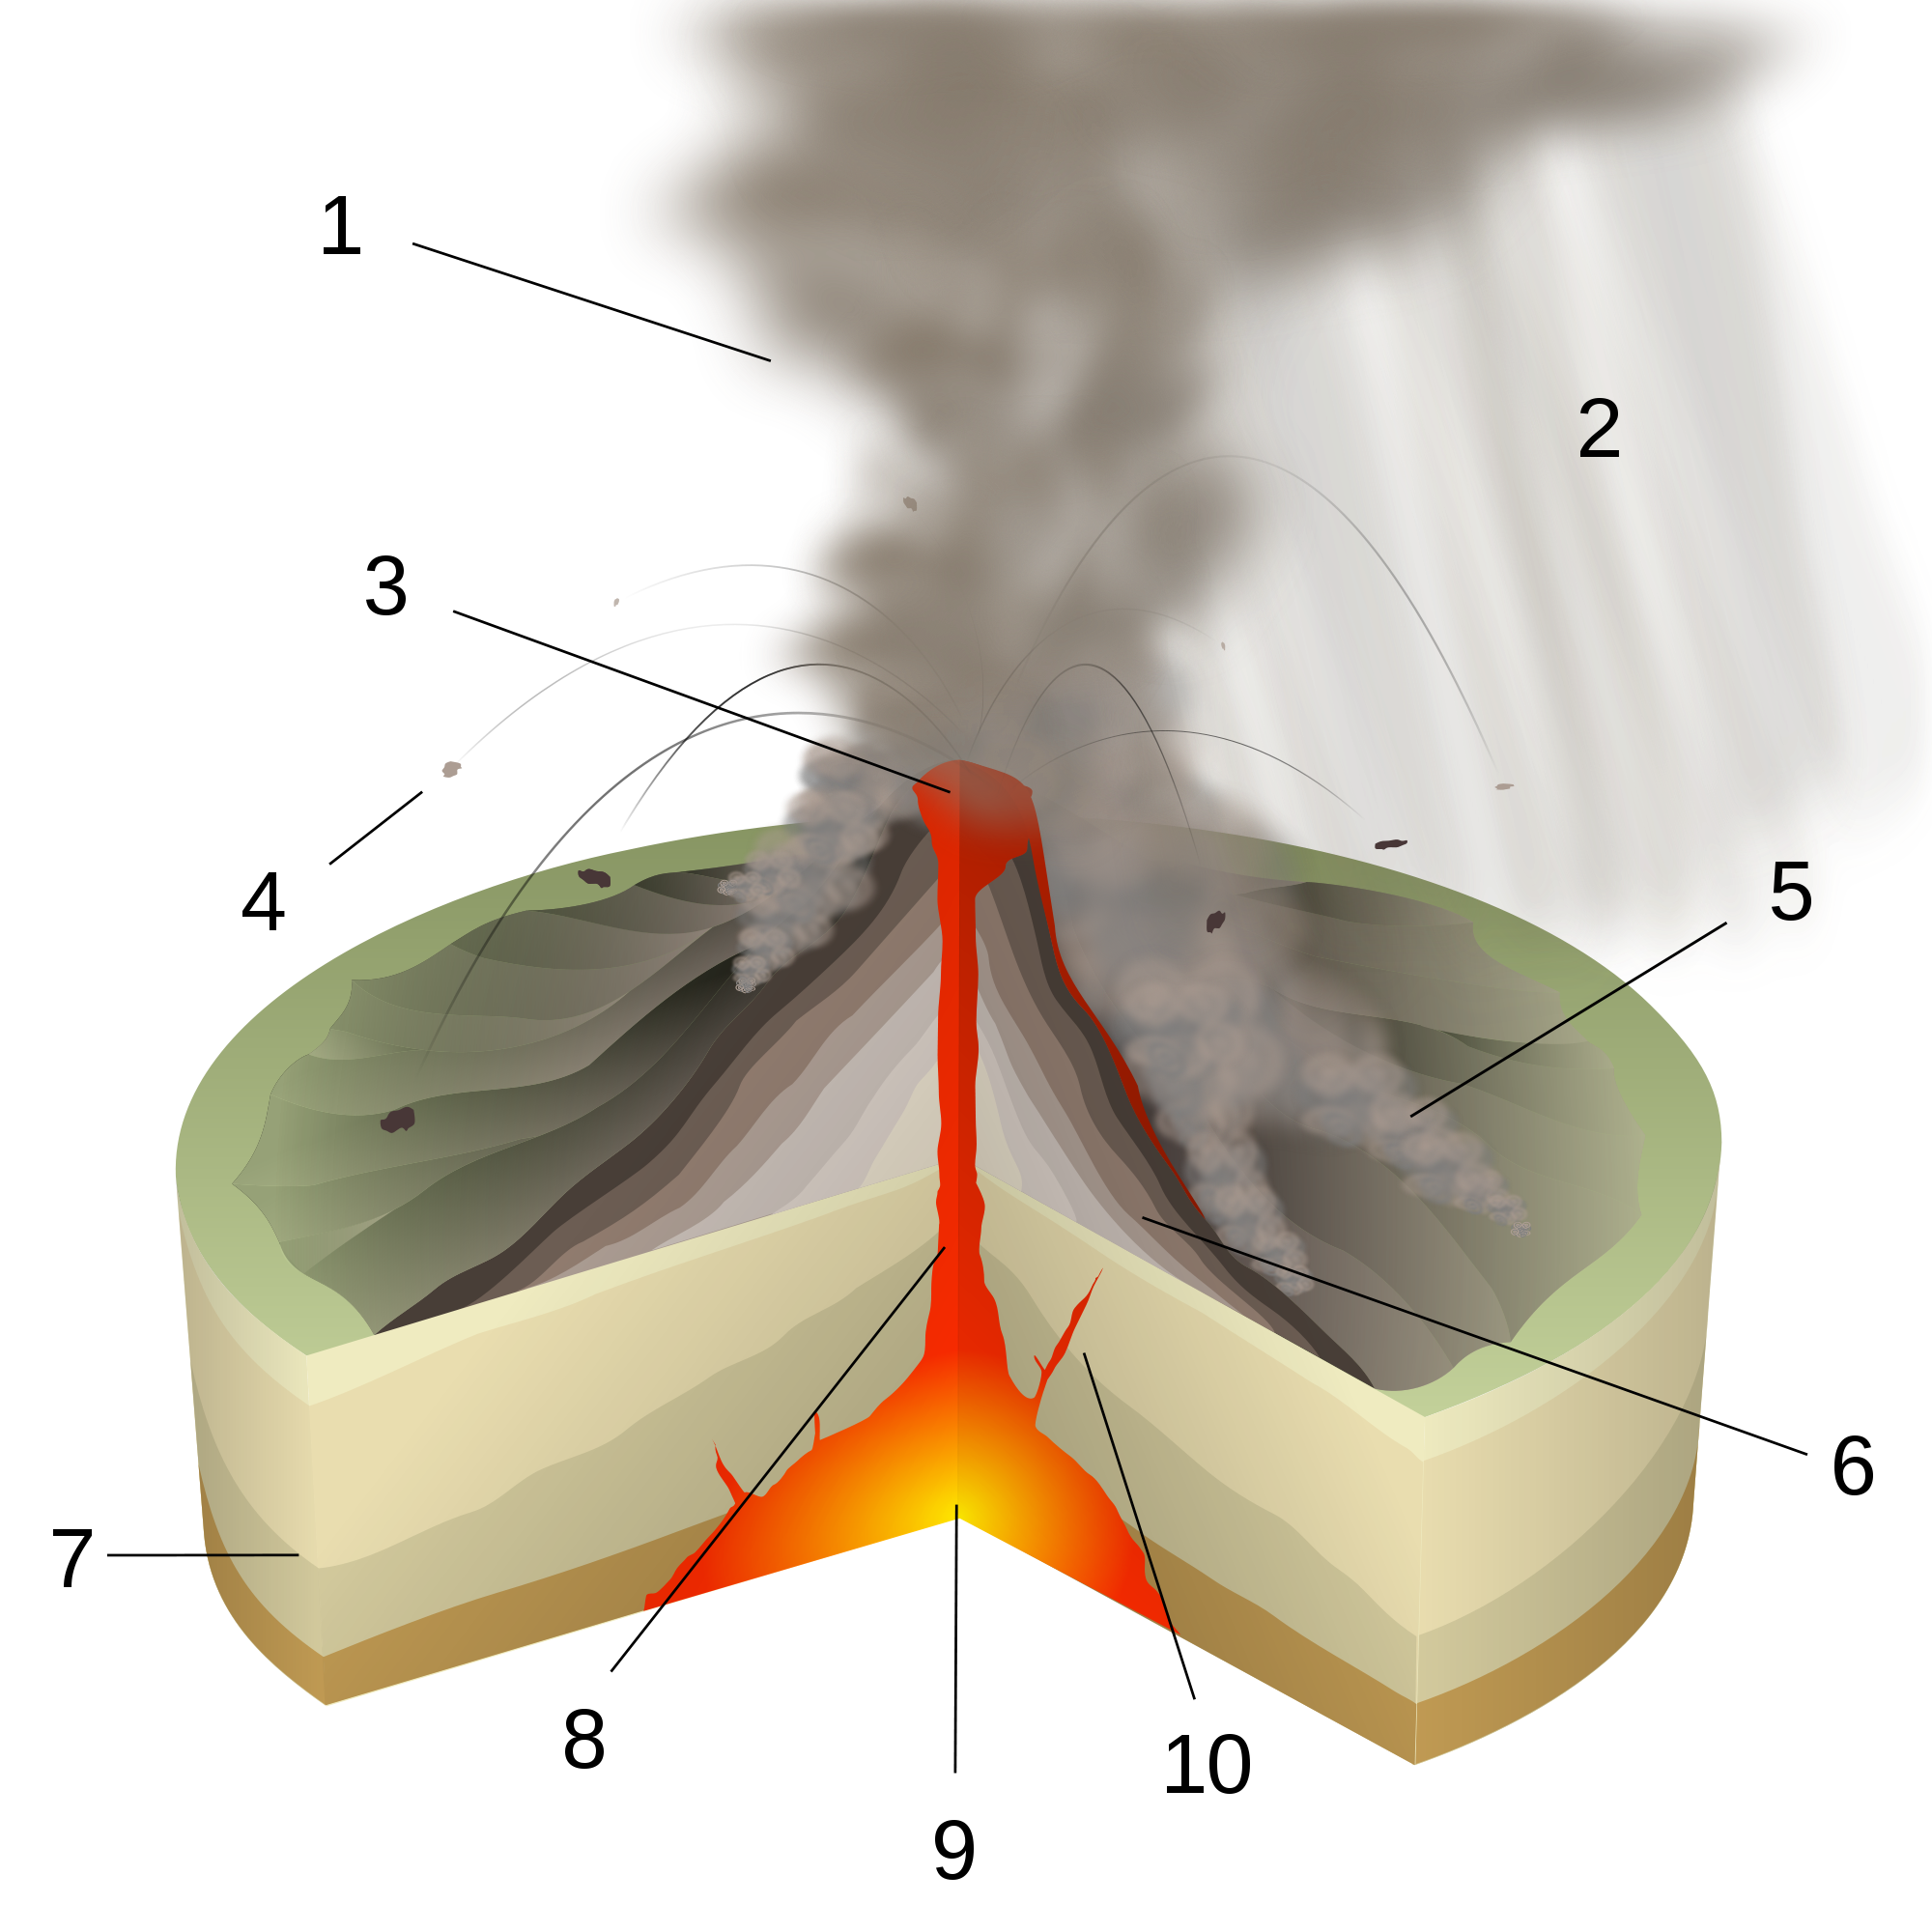 Types of volcanic eruptions wikipedia the free encyclopedia types of volcanic eruptions wikipedia the free encyclopedia ccuart Images